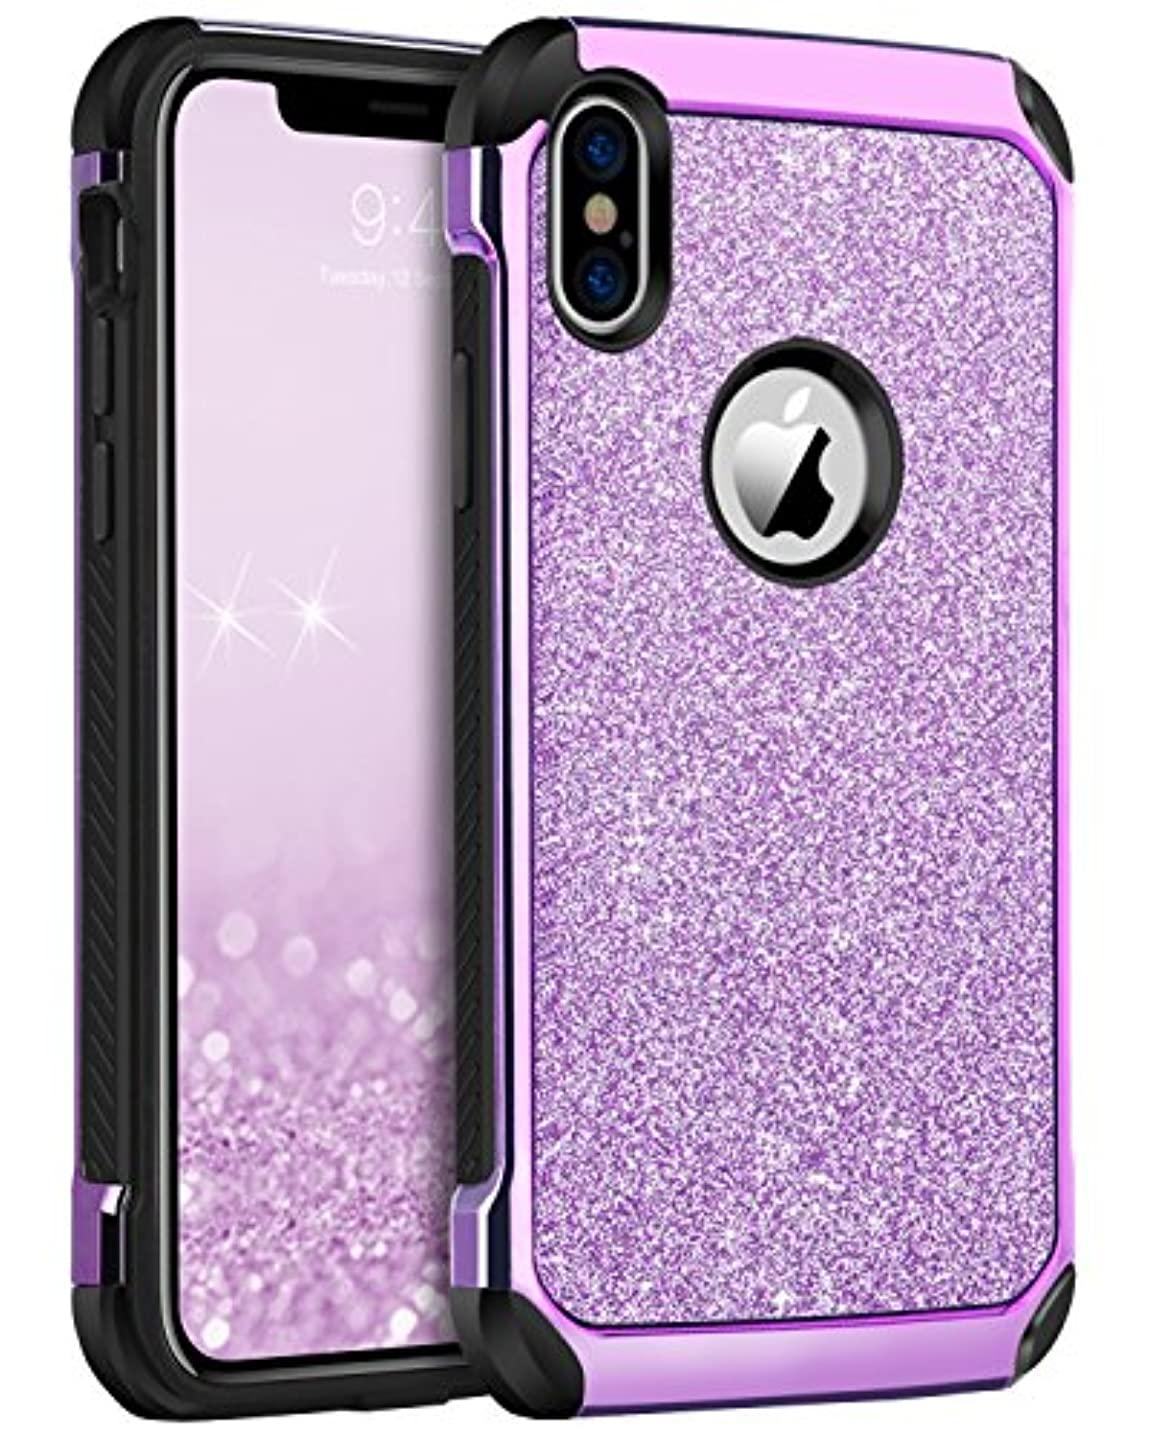 iPhone X/10 Case, iPhone XS Phone Case, BENTOBEN Shockproof Glitter Sparkle Bling 2 in 1 Hybrid Shiny Faux Leather Hard PC Soft Bumper Protective iPhone X/XS 5.8